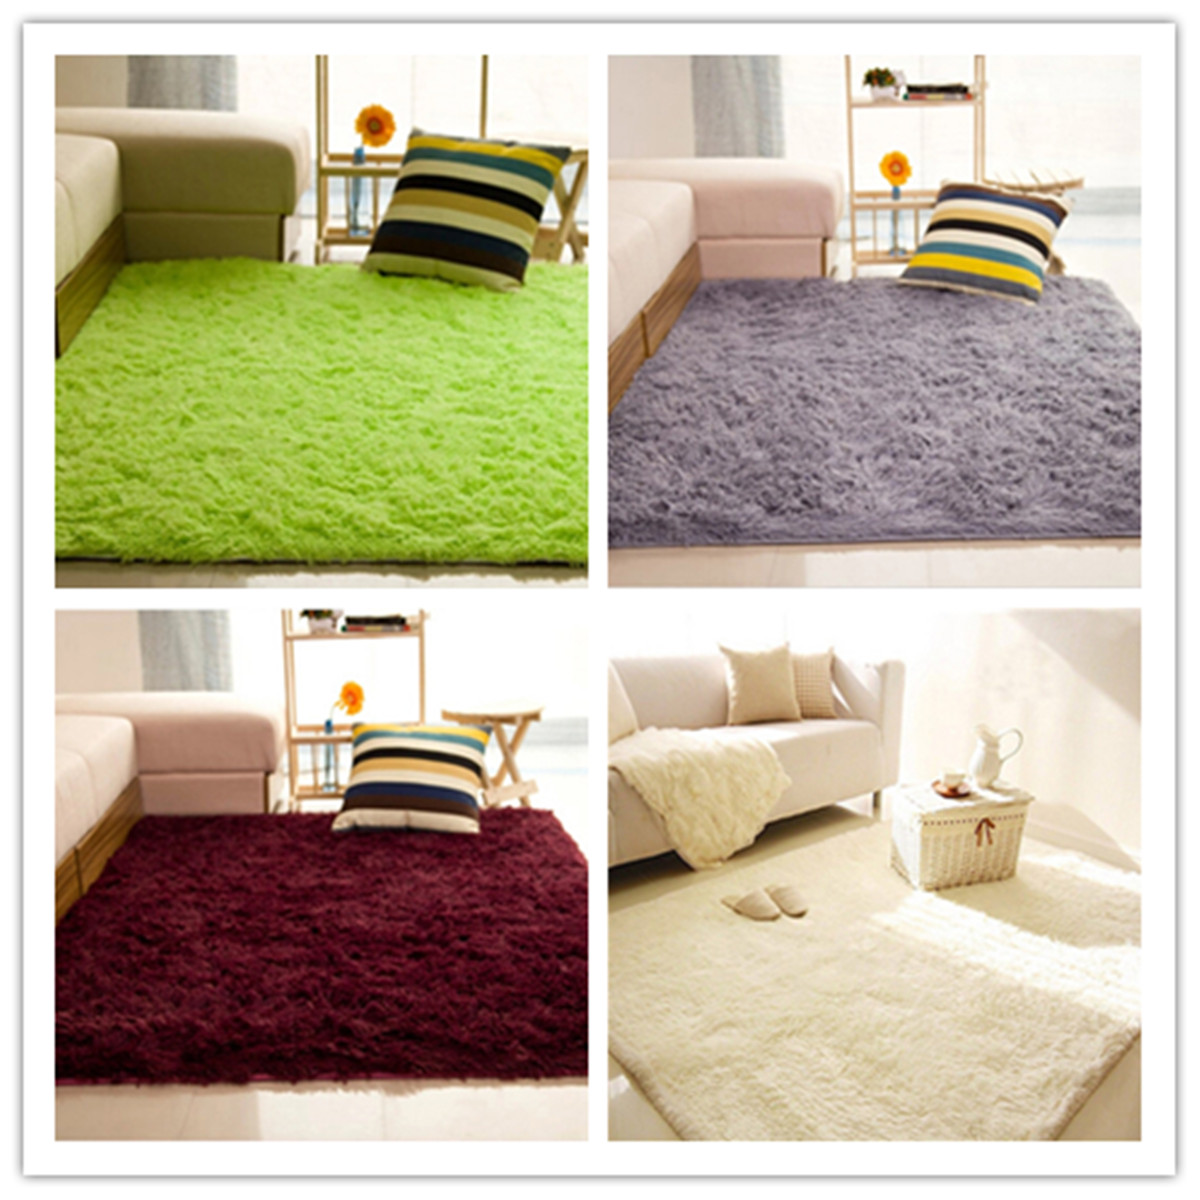 Cotton Carpet Living Room Dining Bedroom Area Rugs Anti: Shaggy Anti-skid Carpets Rugs Floor Mat/Cover 80x120cm